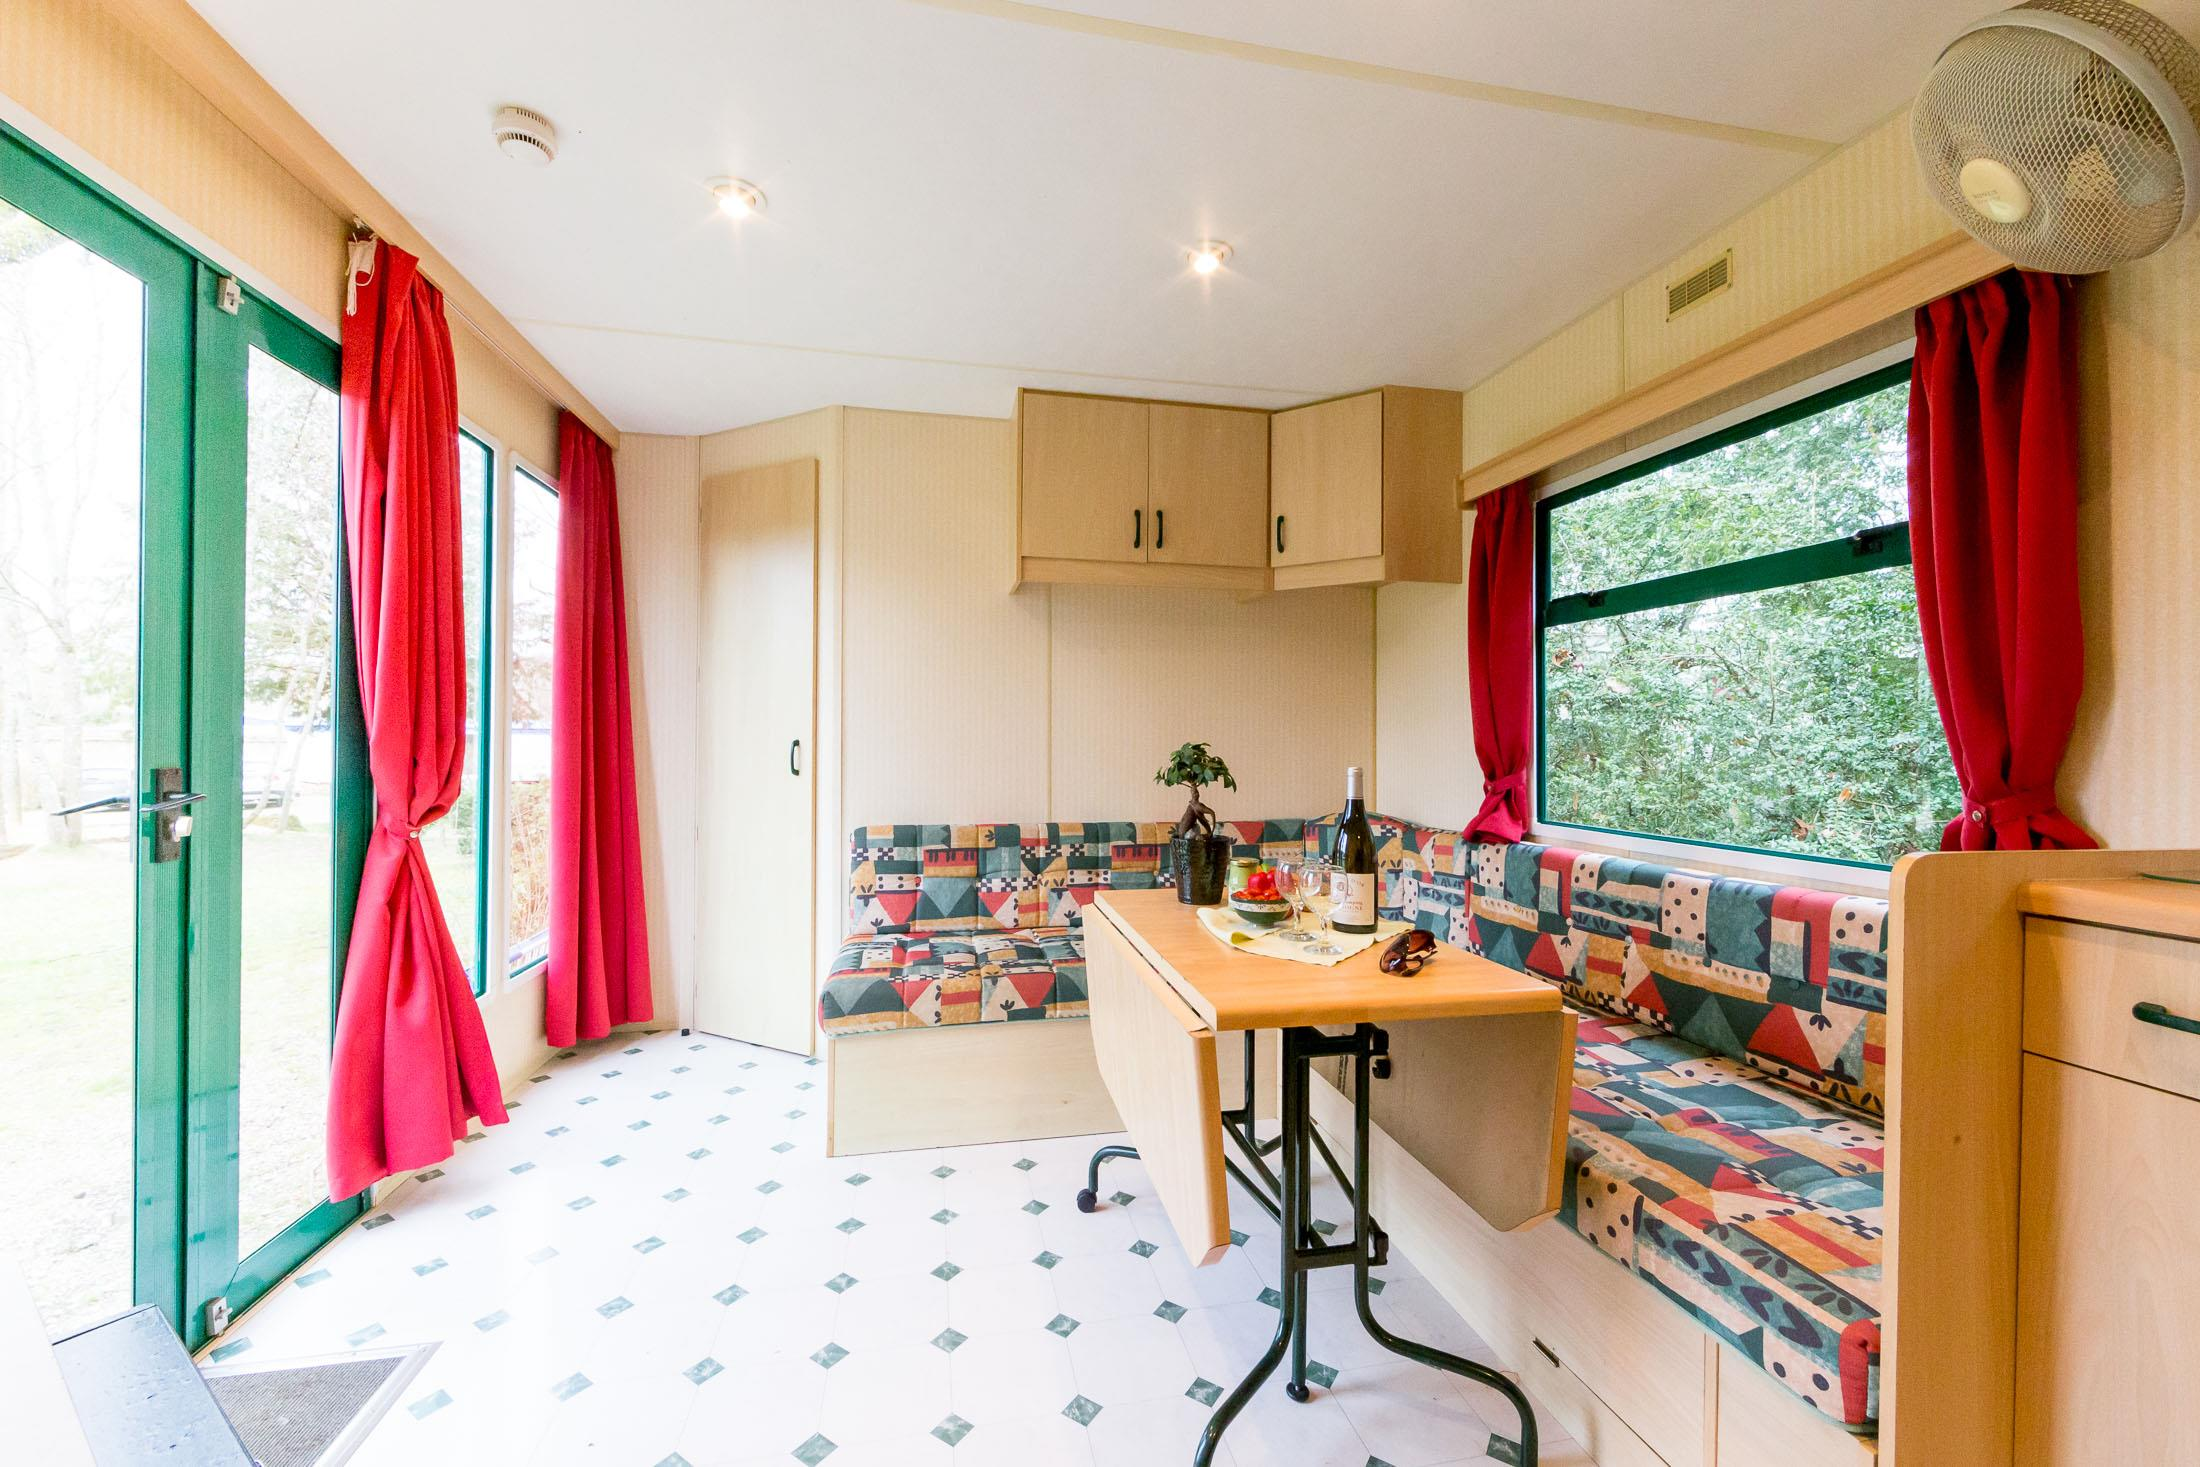 home VERONA (150 m from the campsite) low price